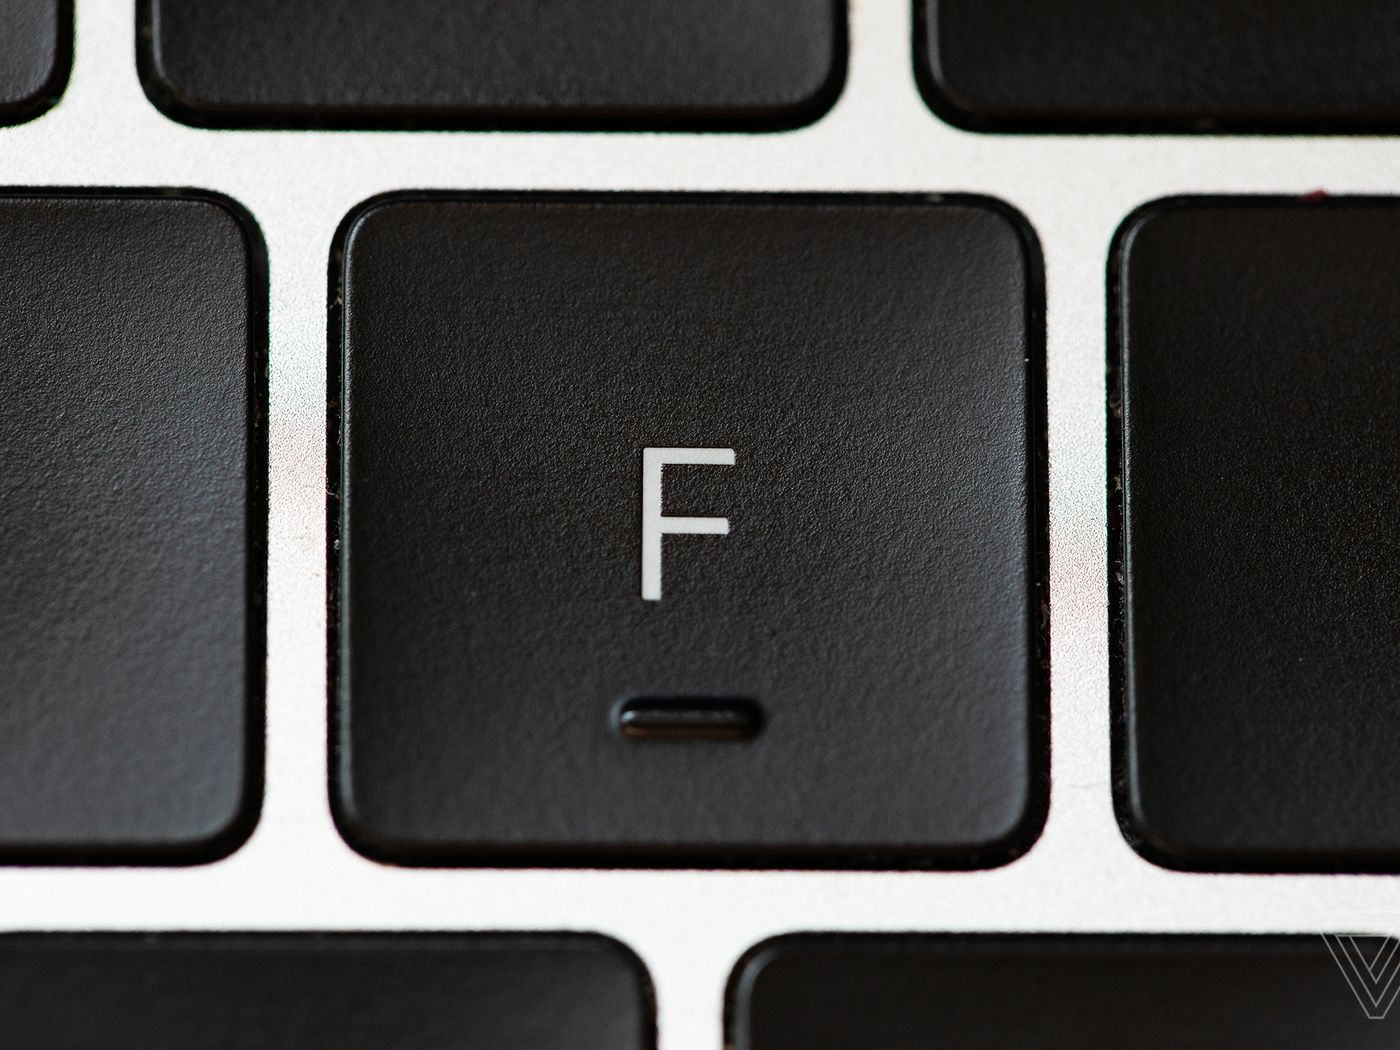 Apple S Butterfly Keyboard Failed By Prioritizing Form Over Function The Verge